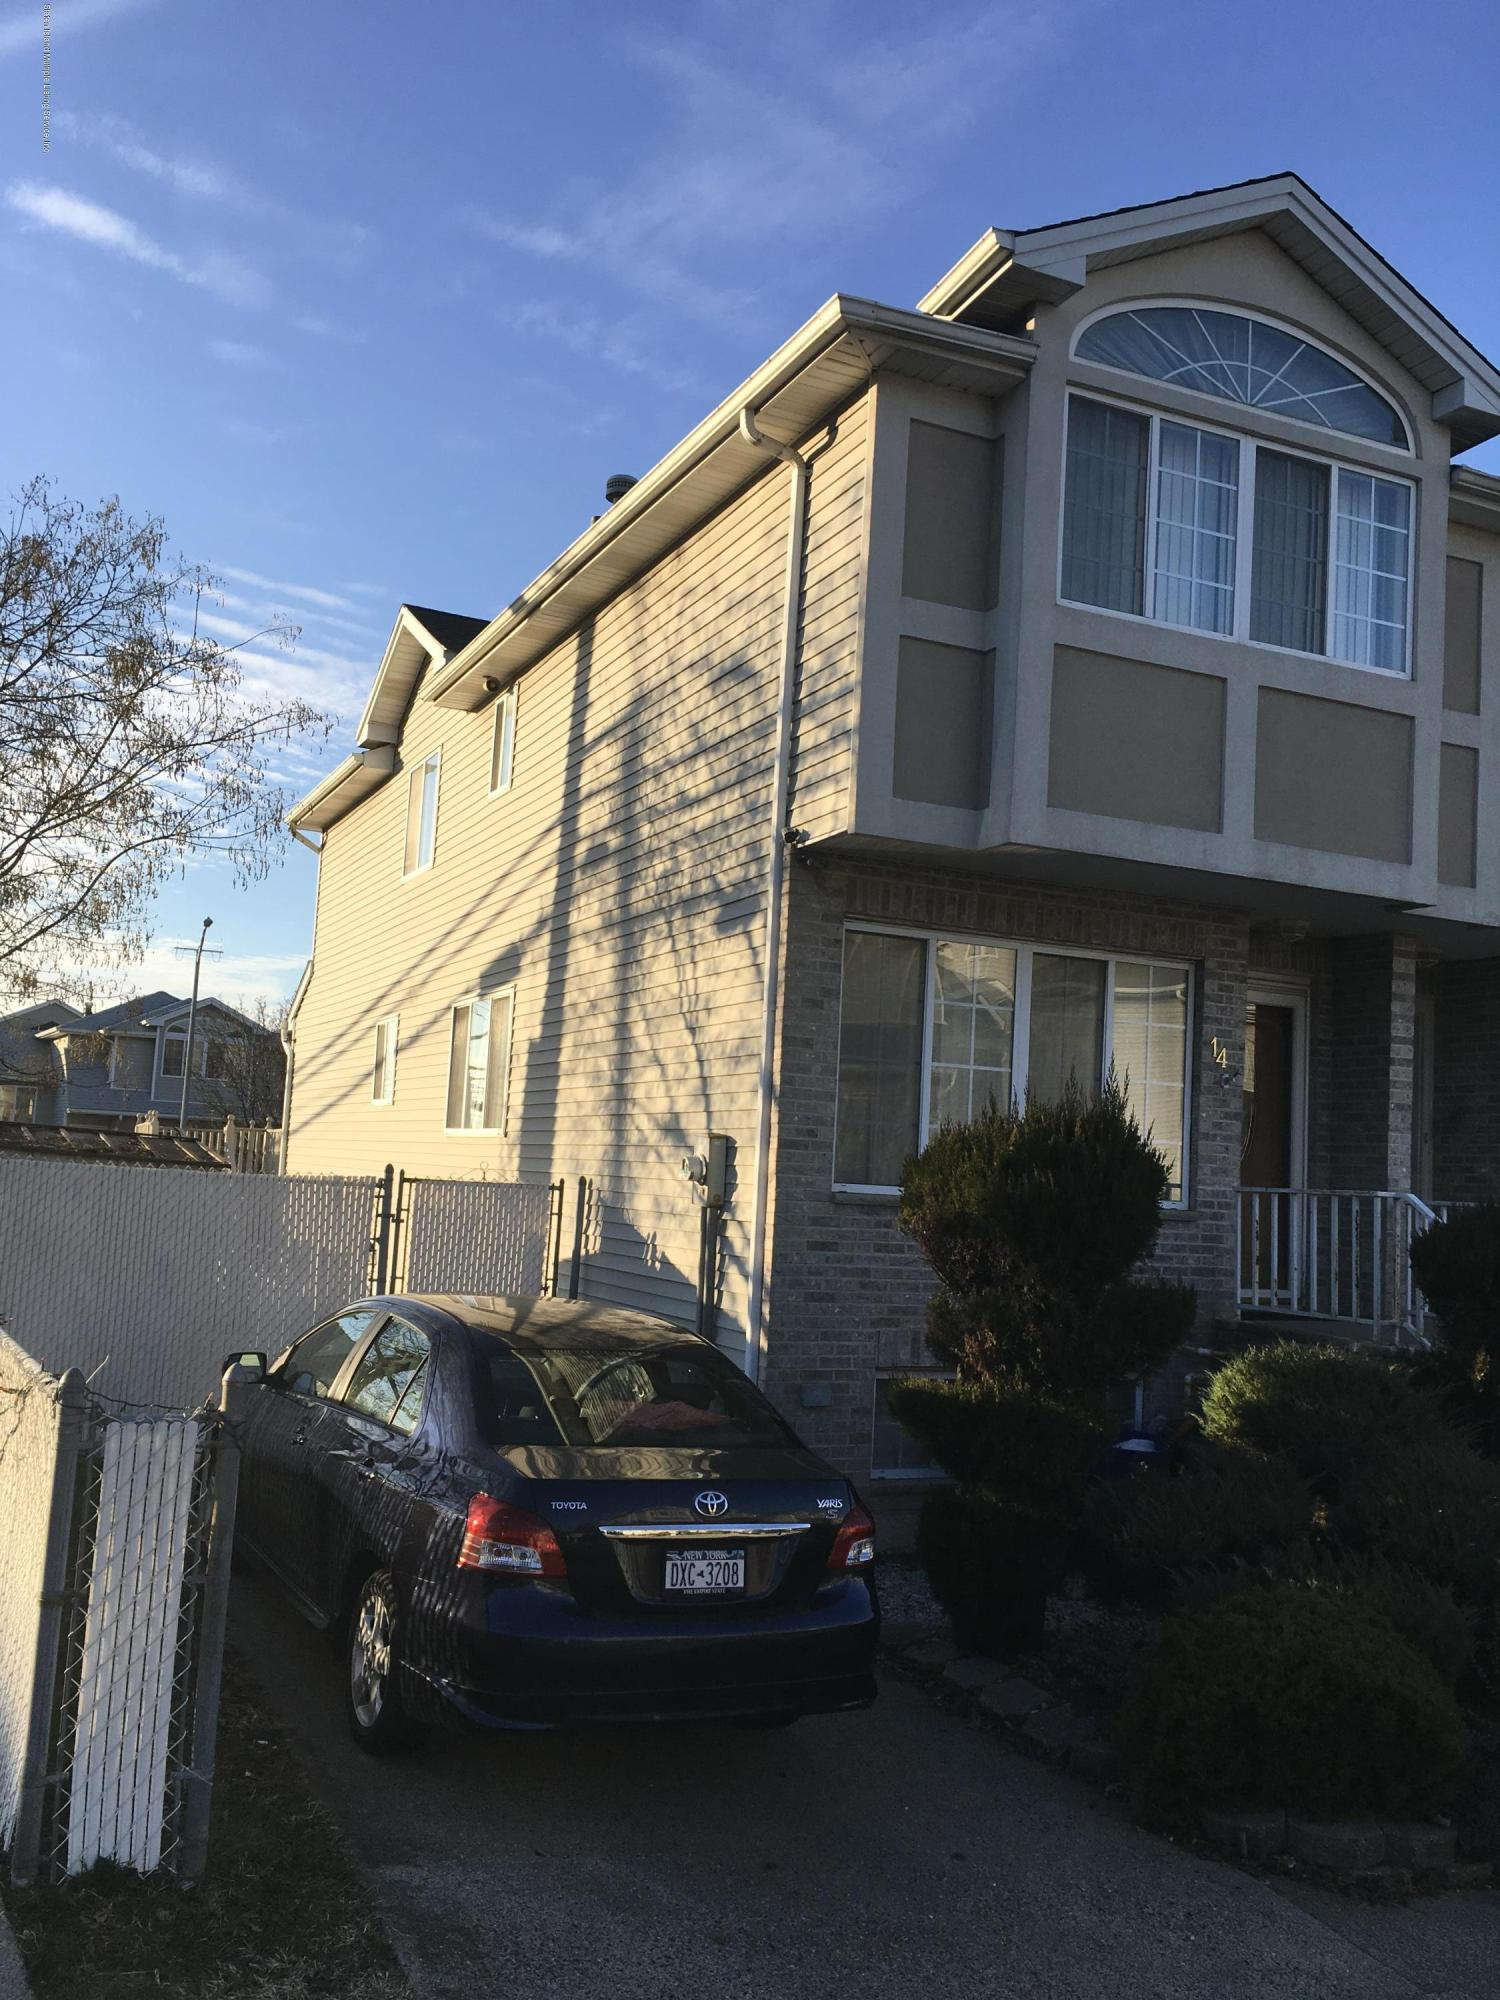 Single Family - Semi-Attached 14 Latourette Lane  Staten Island, NY 10314, MLS-1124936-2